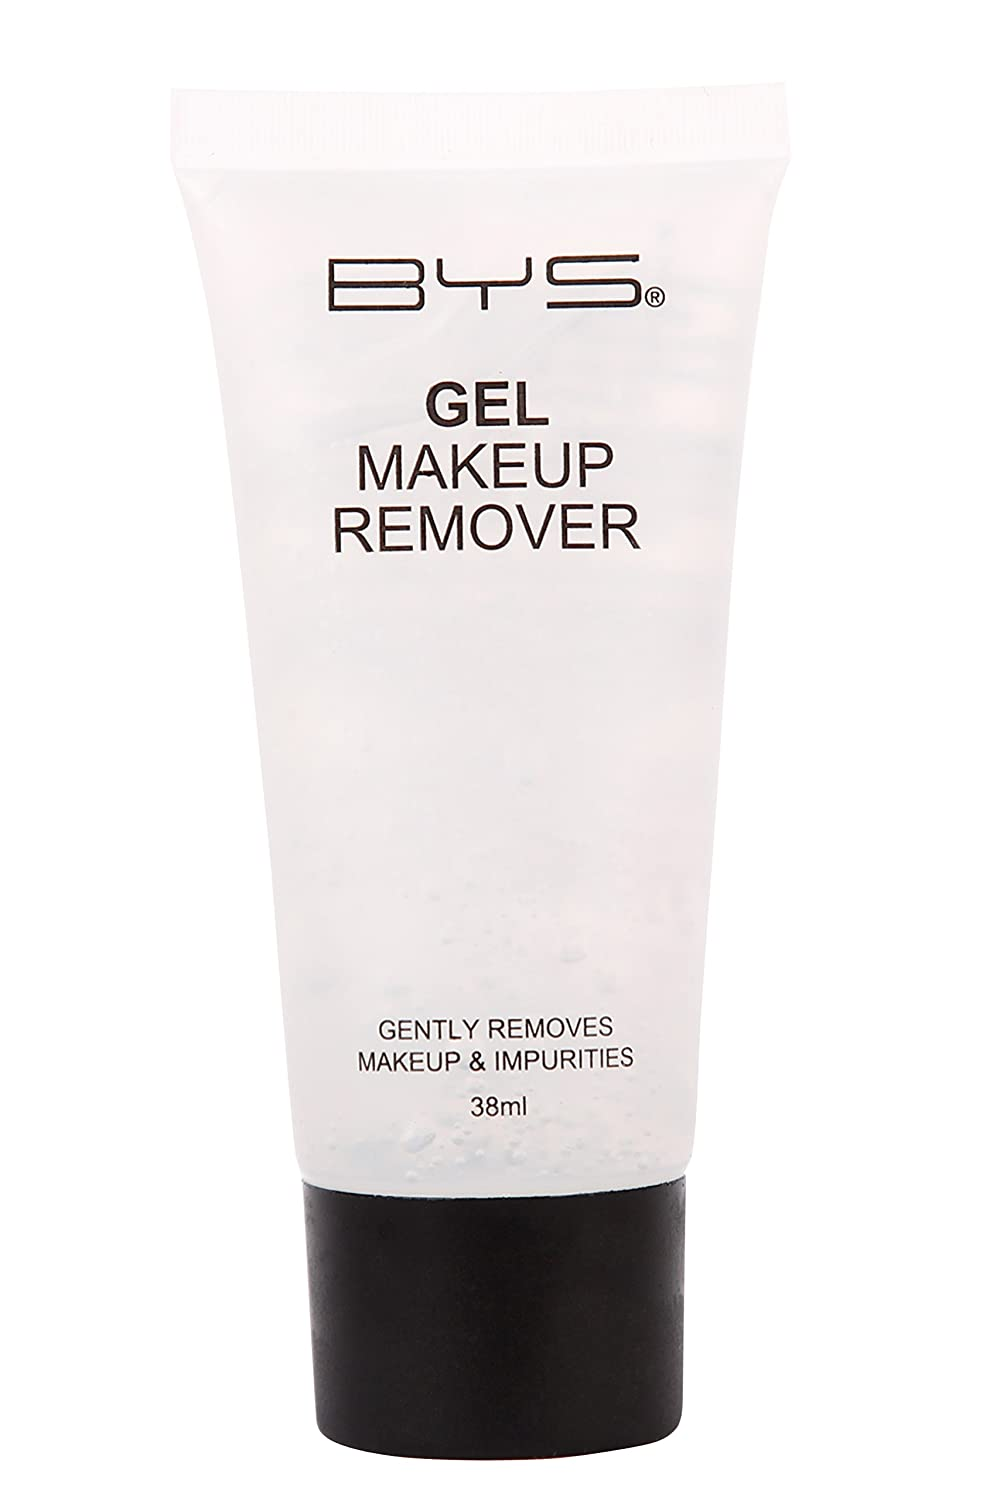 BYS Makeup Remover Gel - Gently Removes Makeup and Impurities, Paraben Free, gel-like formulation is gentle and leaves skin feeling soft, clean and refreshed, 38ml